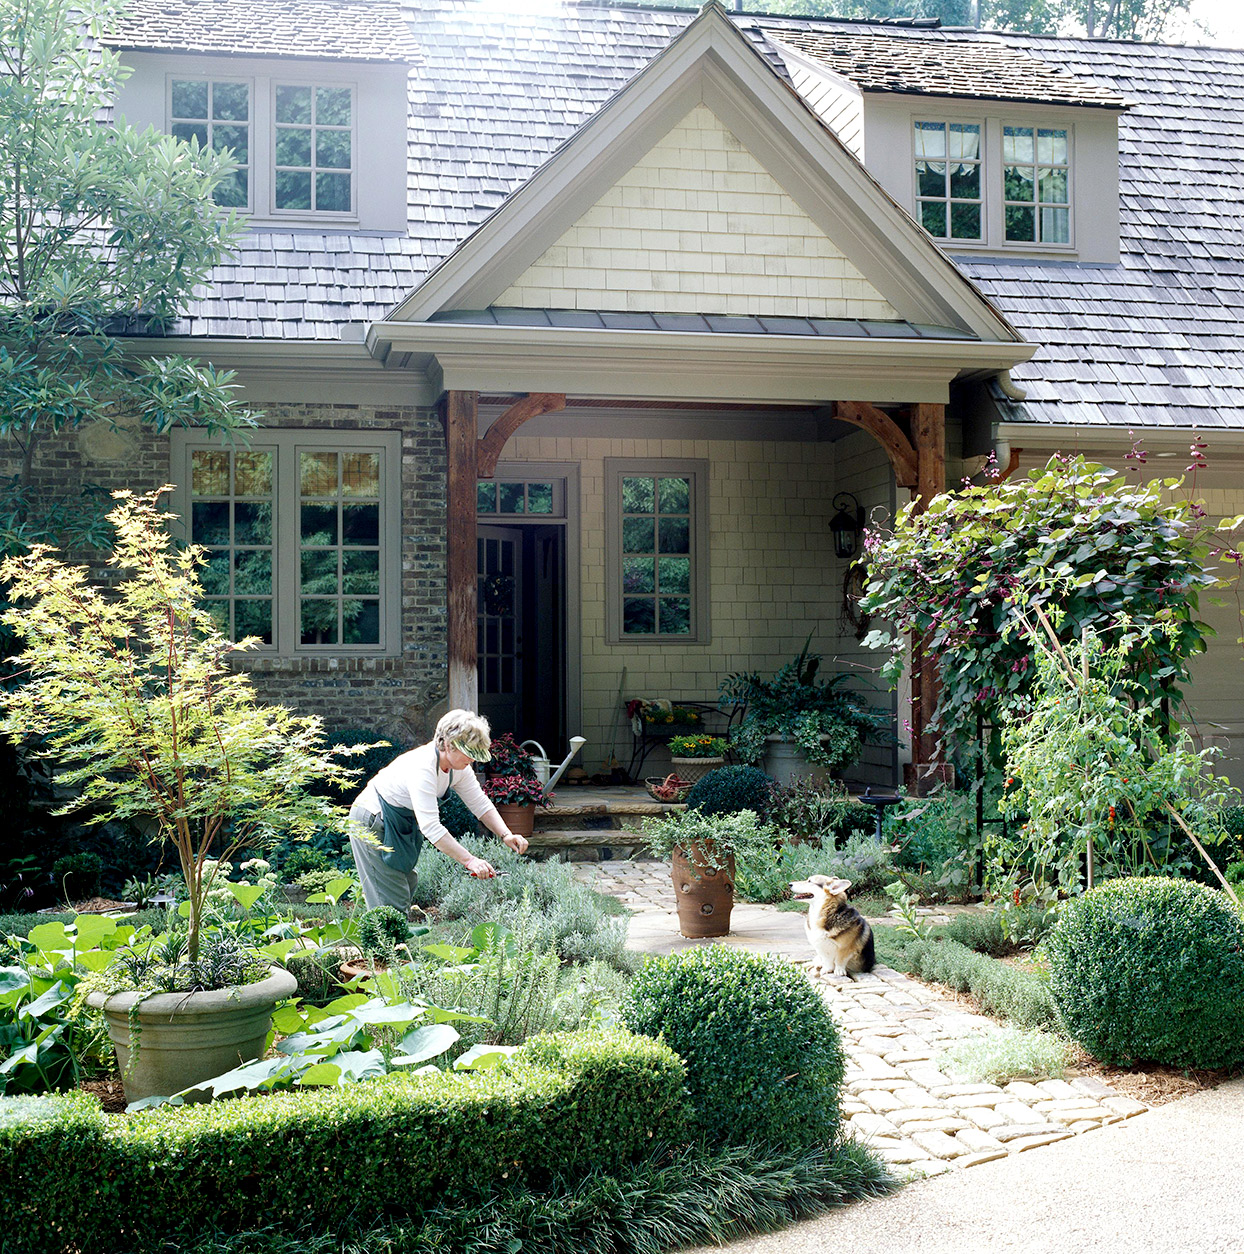 Person gardening with dog in front of house